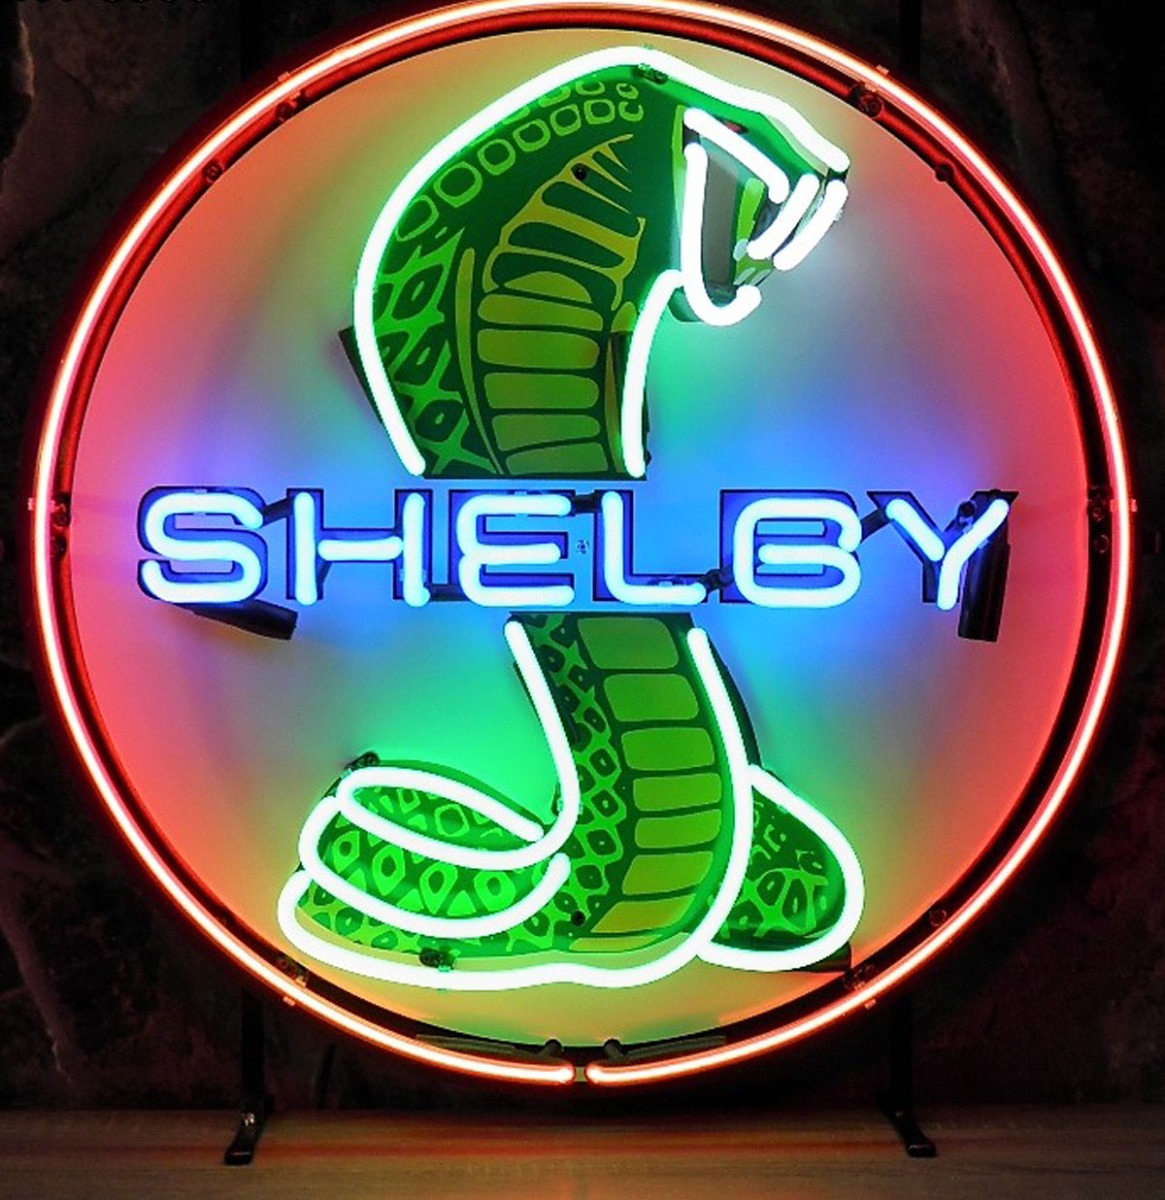 Shelby Neon Verlichting - Blauwe Shelby Letters - 65 x 65 cm